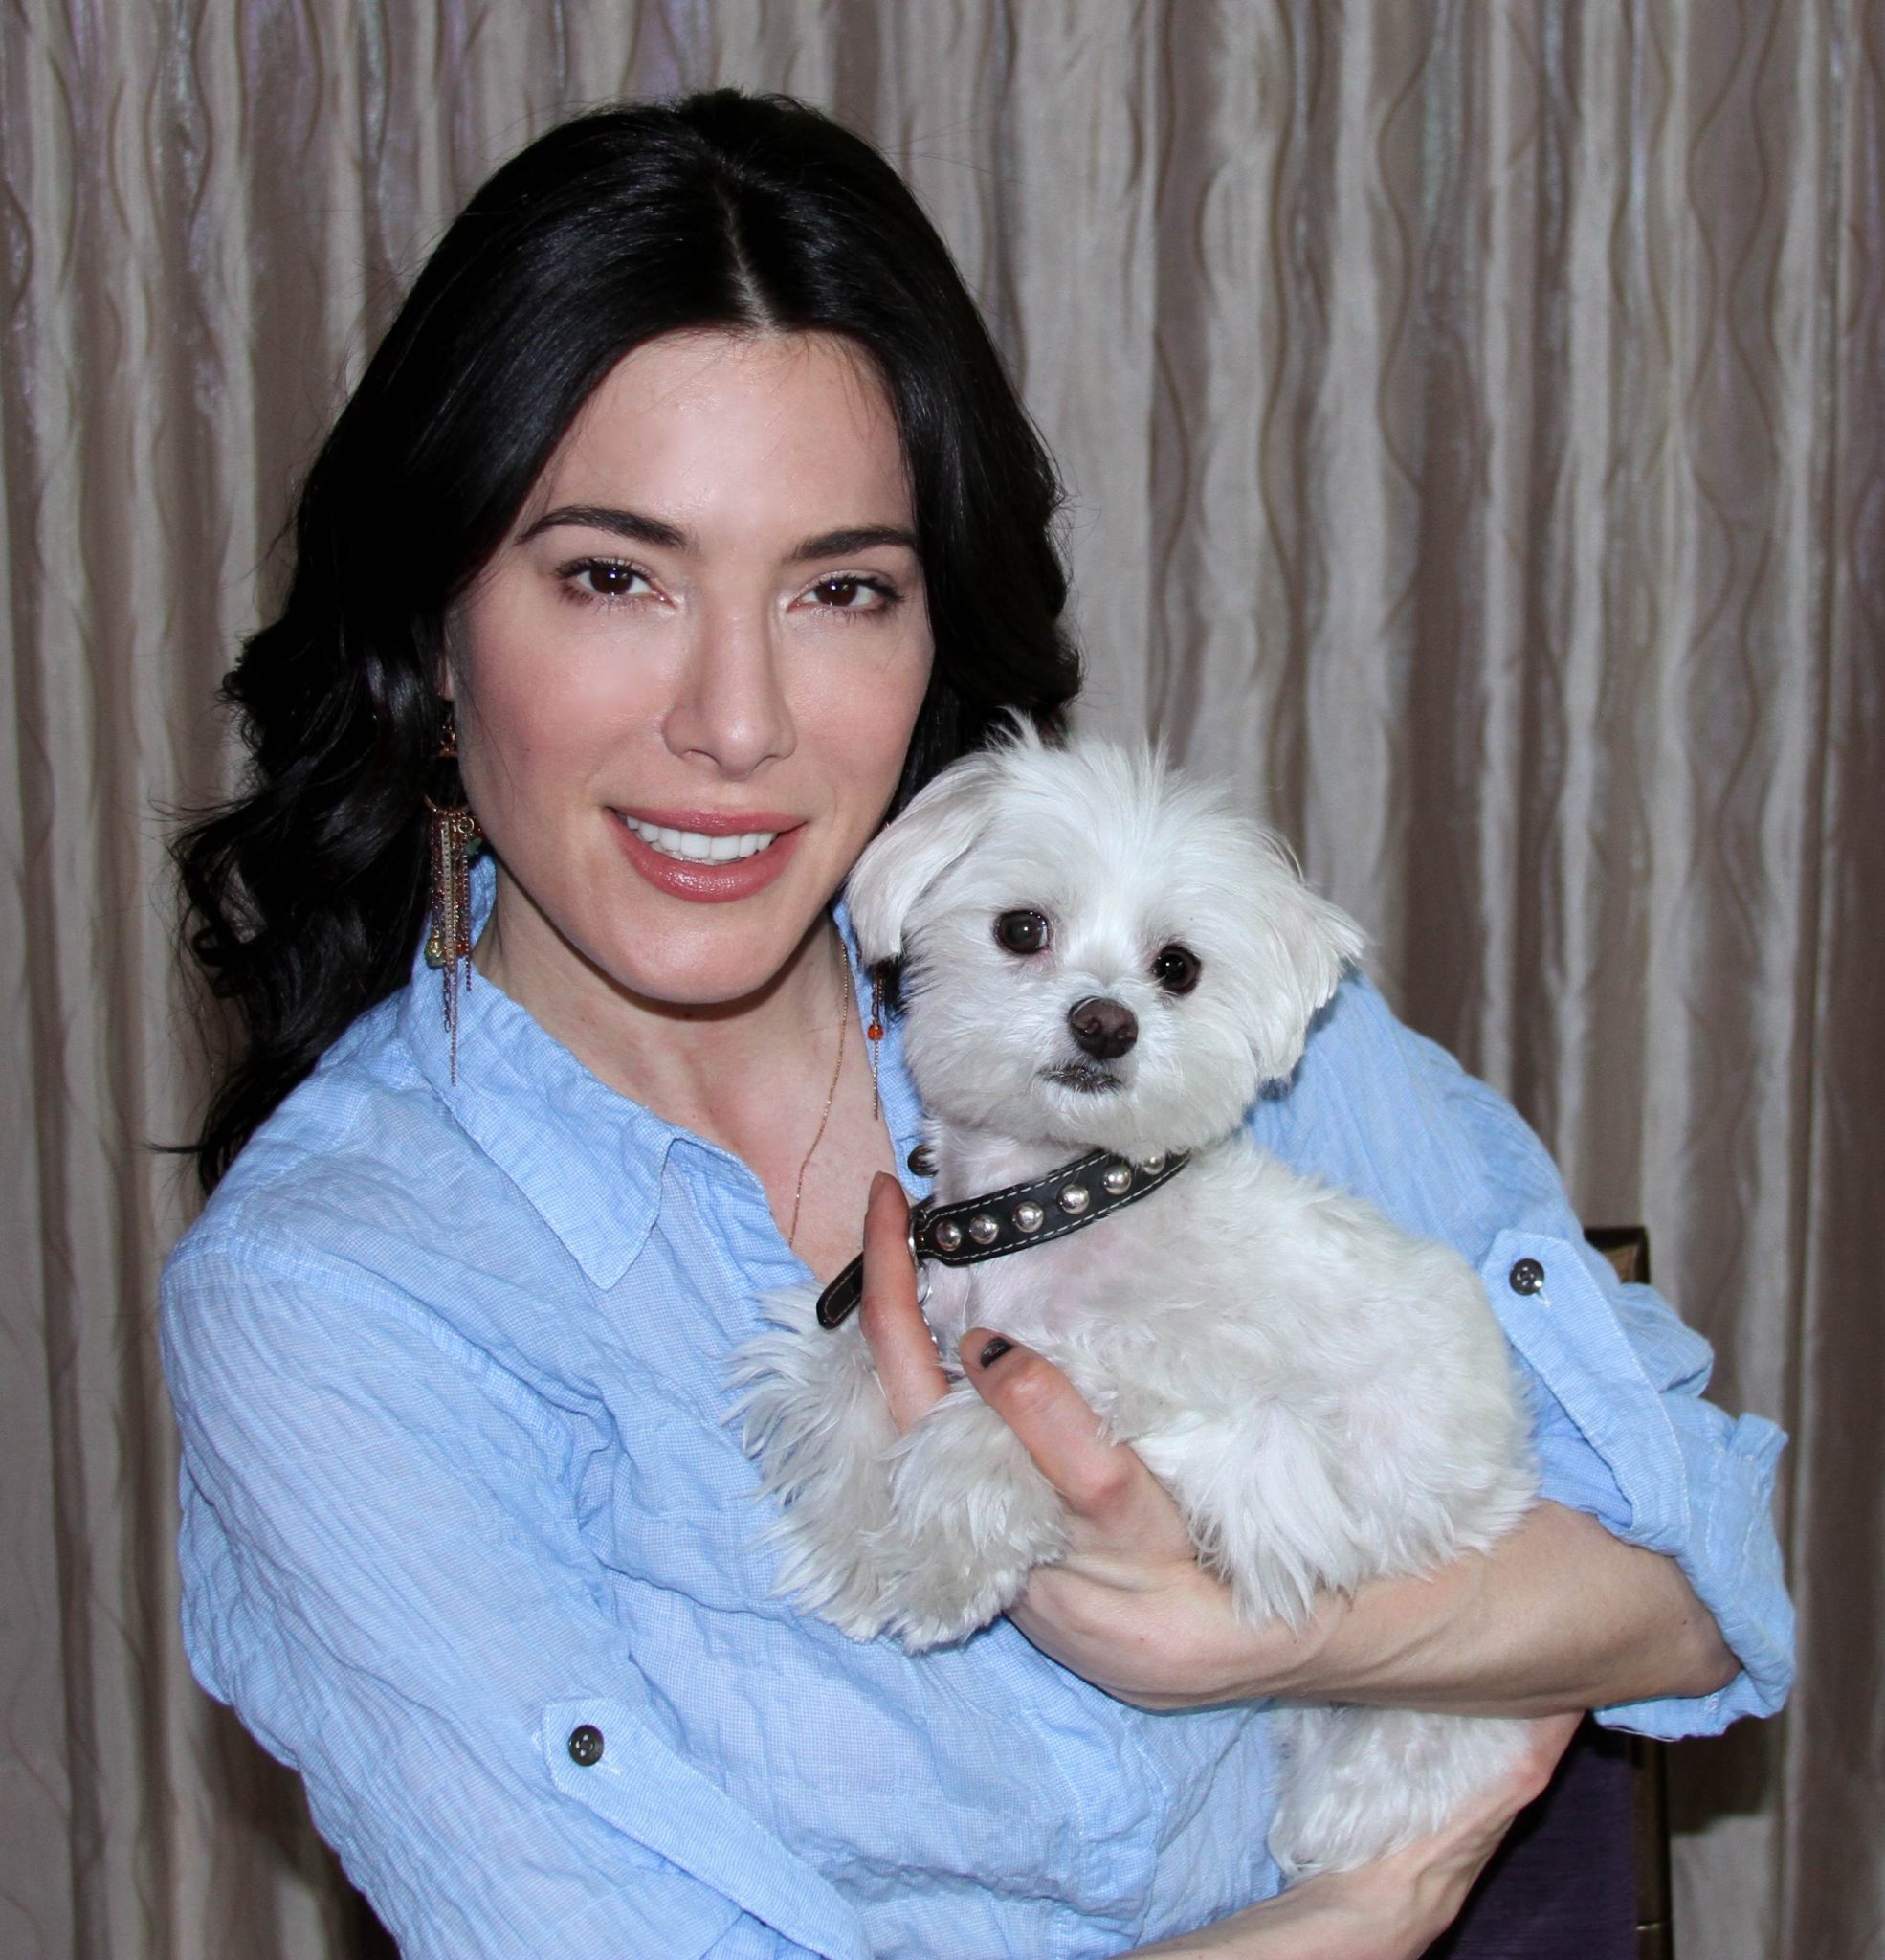 Syfy's Defiance Star Jaime Murray's Out Of This World's Dog Co-star Lulu!